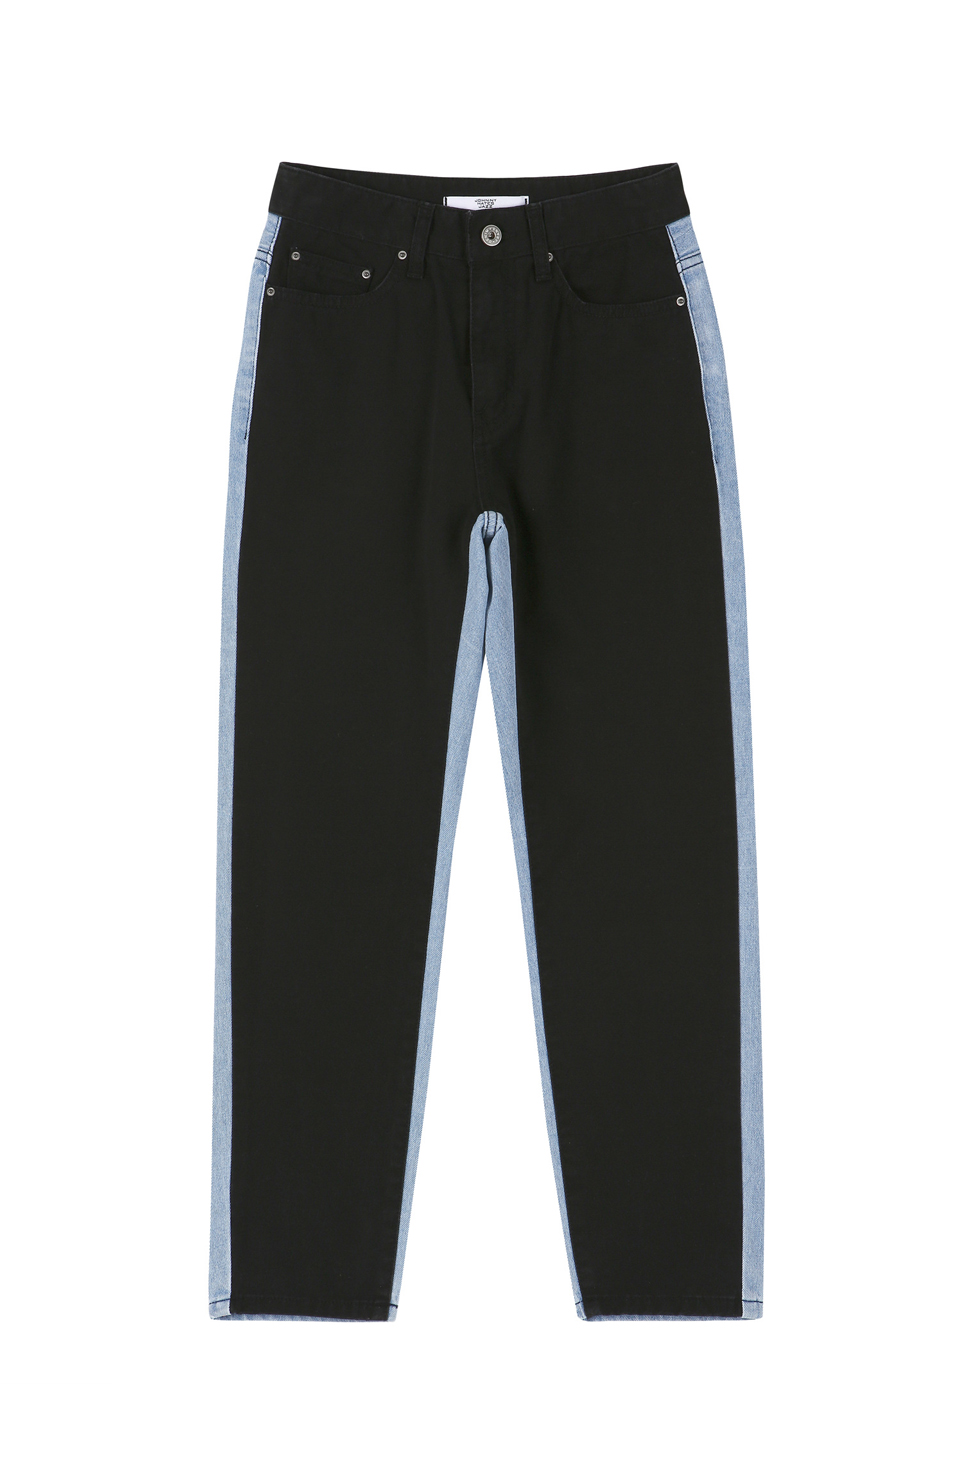 CONTRASTING PANTS - BLACK